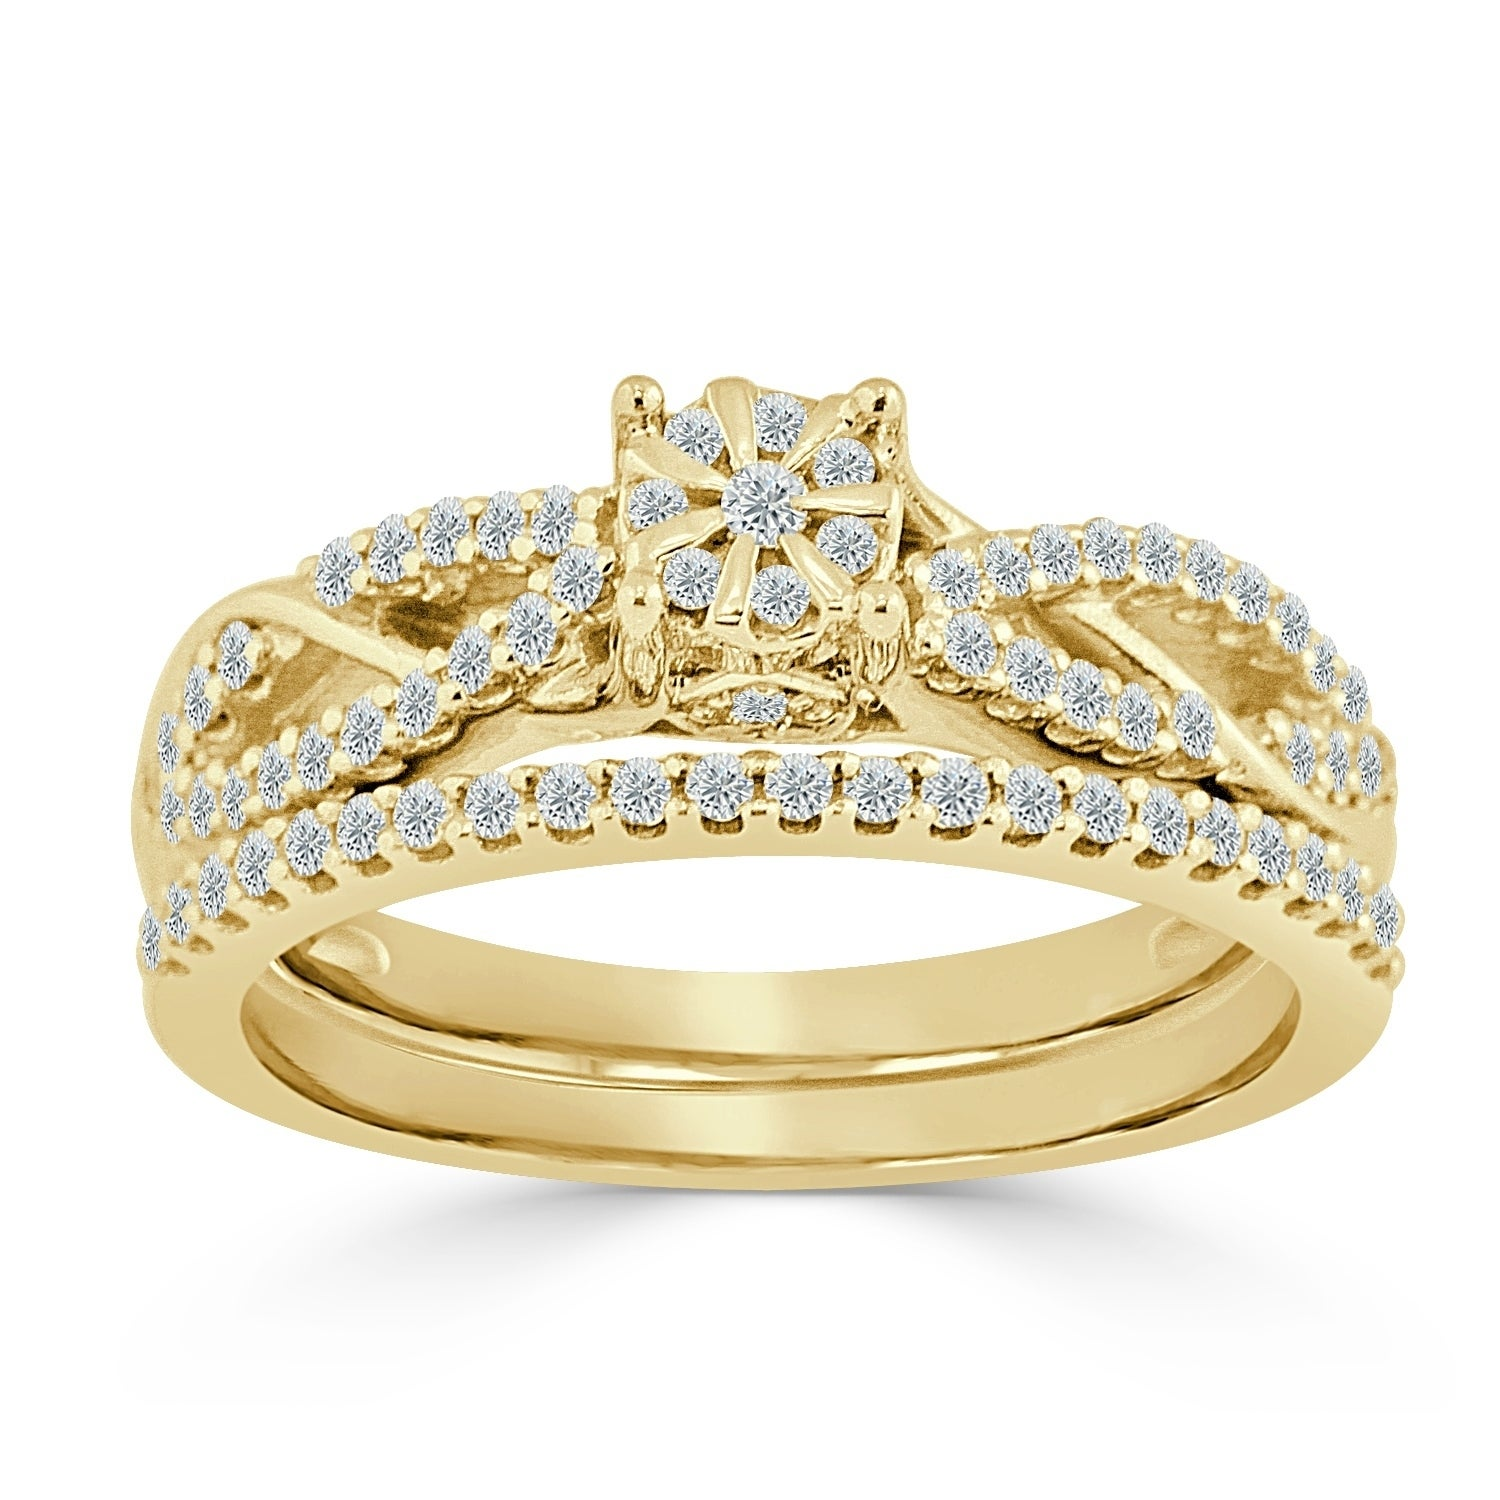 14k Gold Round Infinity Inspired 5 8ct Tdw Diamond Engagement Ring Set By Auriya On Free Shipping Today 17632583